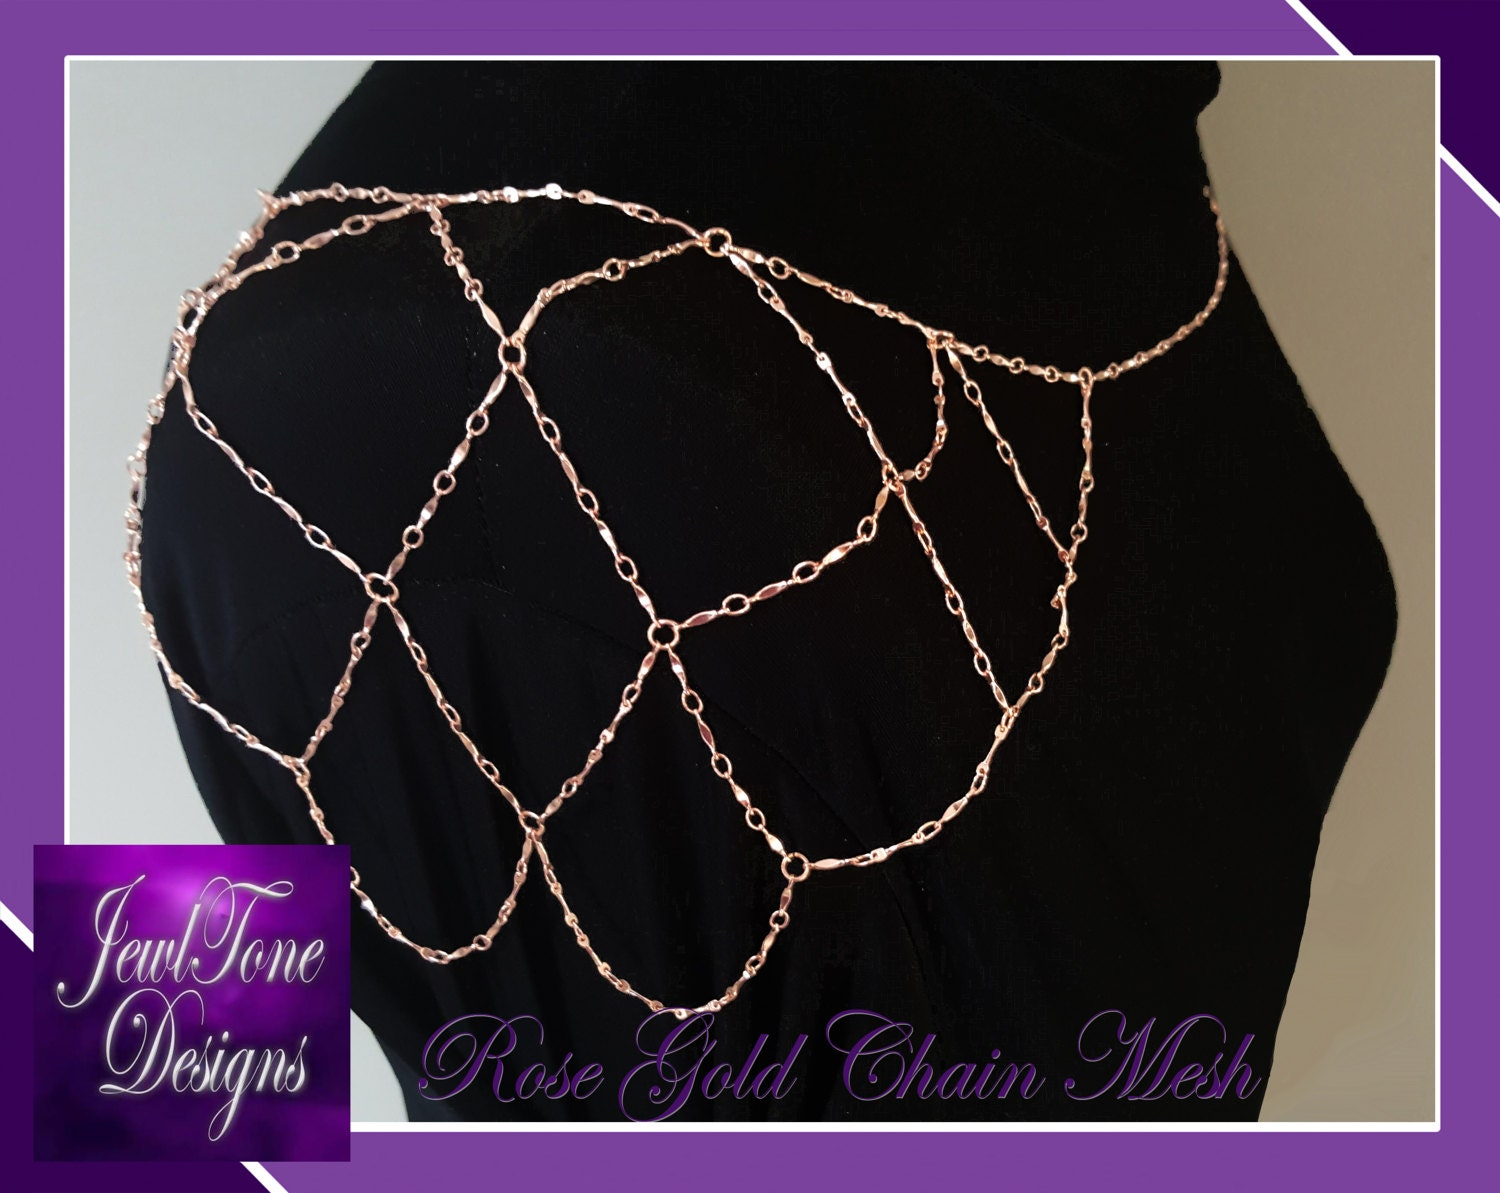 Rose Gold Shoulder Necklace Bridal Jewelry Shoulder Jewelry Chain